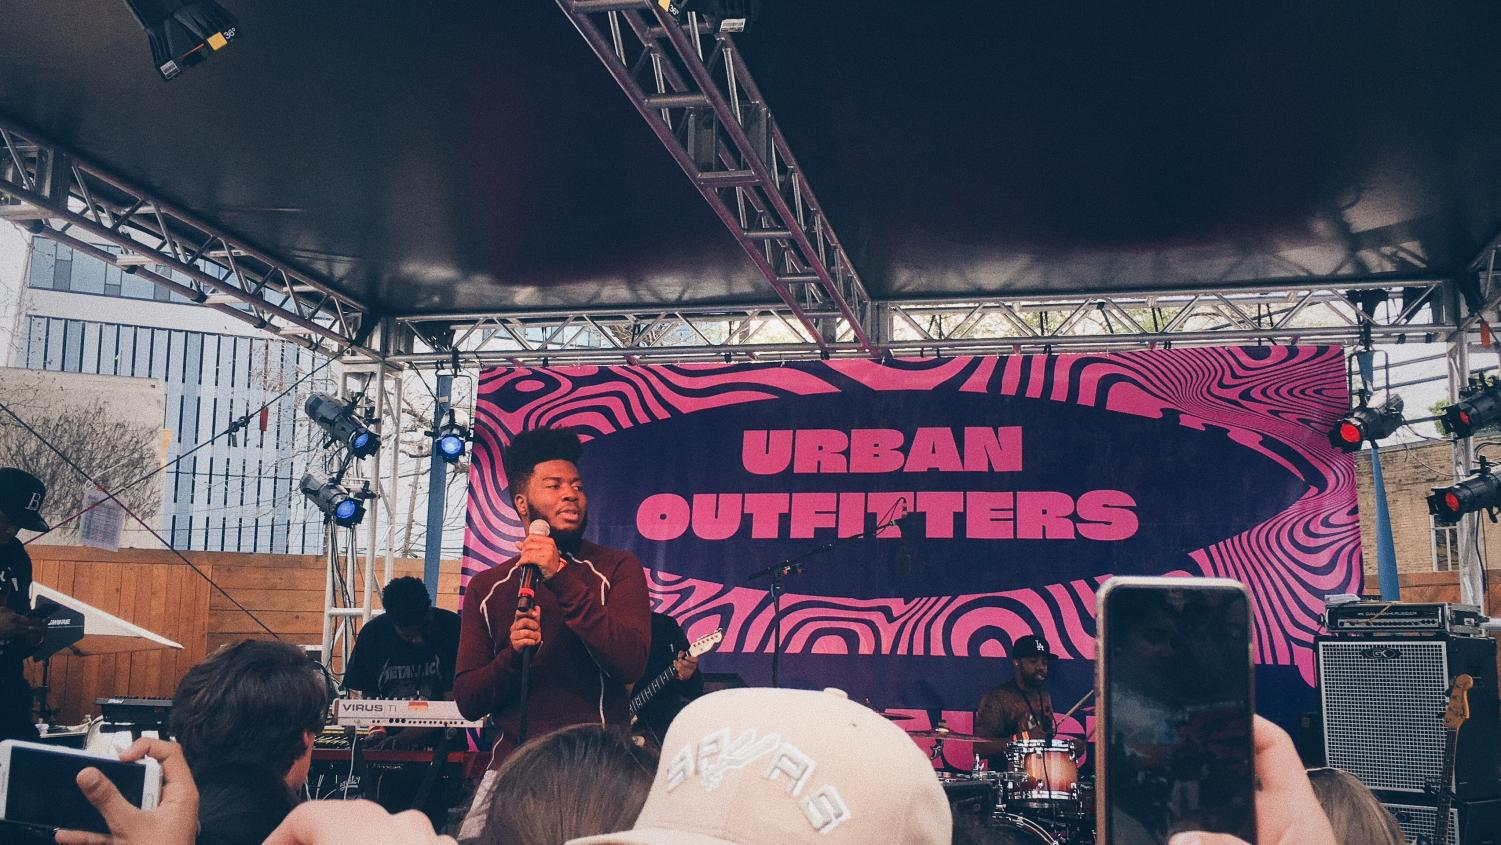 R&B artist and El Paso native Khalid plays the Urban Outfitters stage during an unofficial SXSW show in 2017. The concert, like many outside of the official SXSW festival,  was completely free, proving again that you don't need to be wealthy just savvy to enjoy the best of SXSW. Photo by Zoe Hocker.